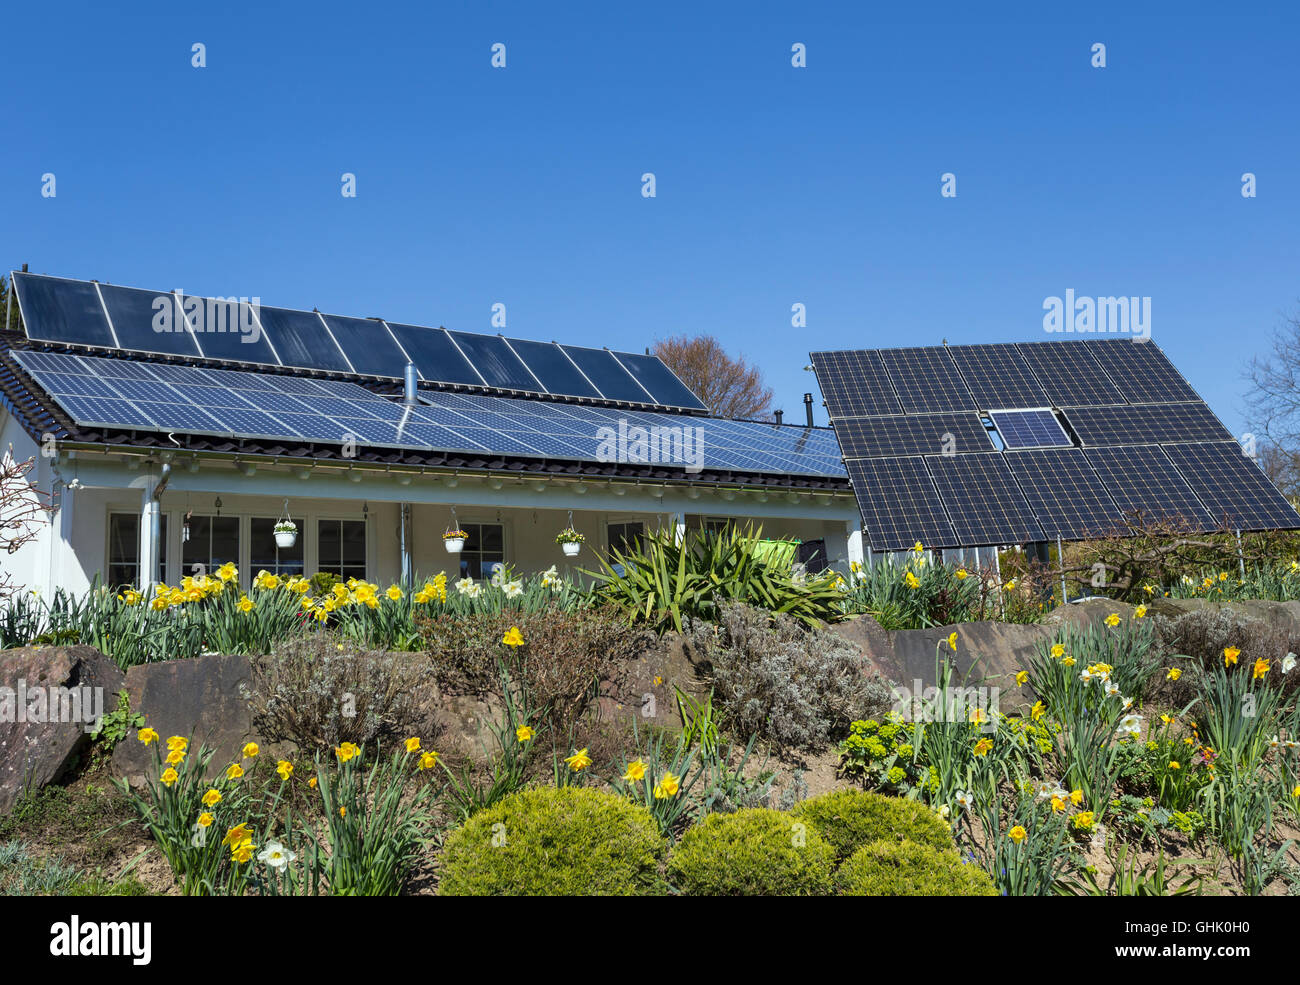 Solar panels on roof - Stock Image